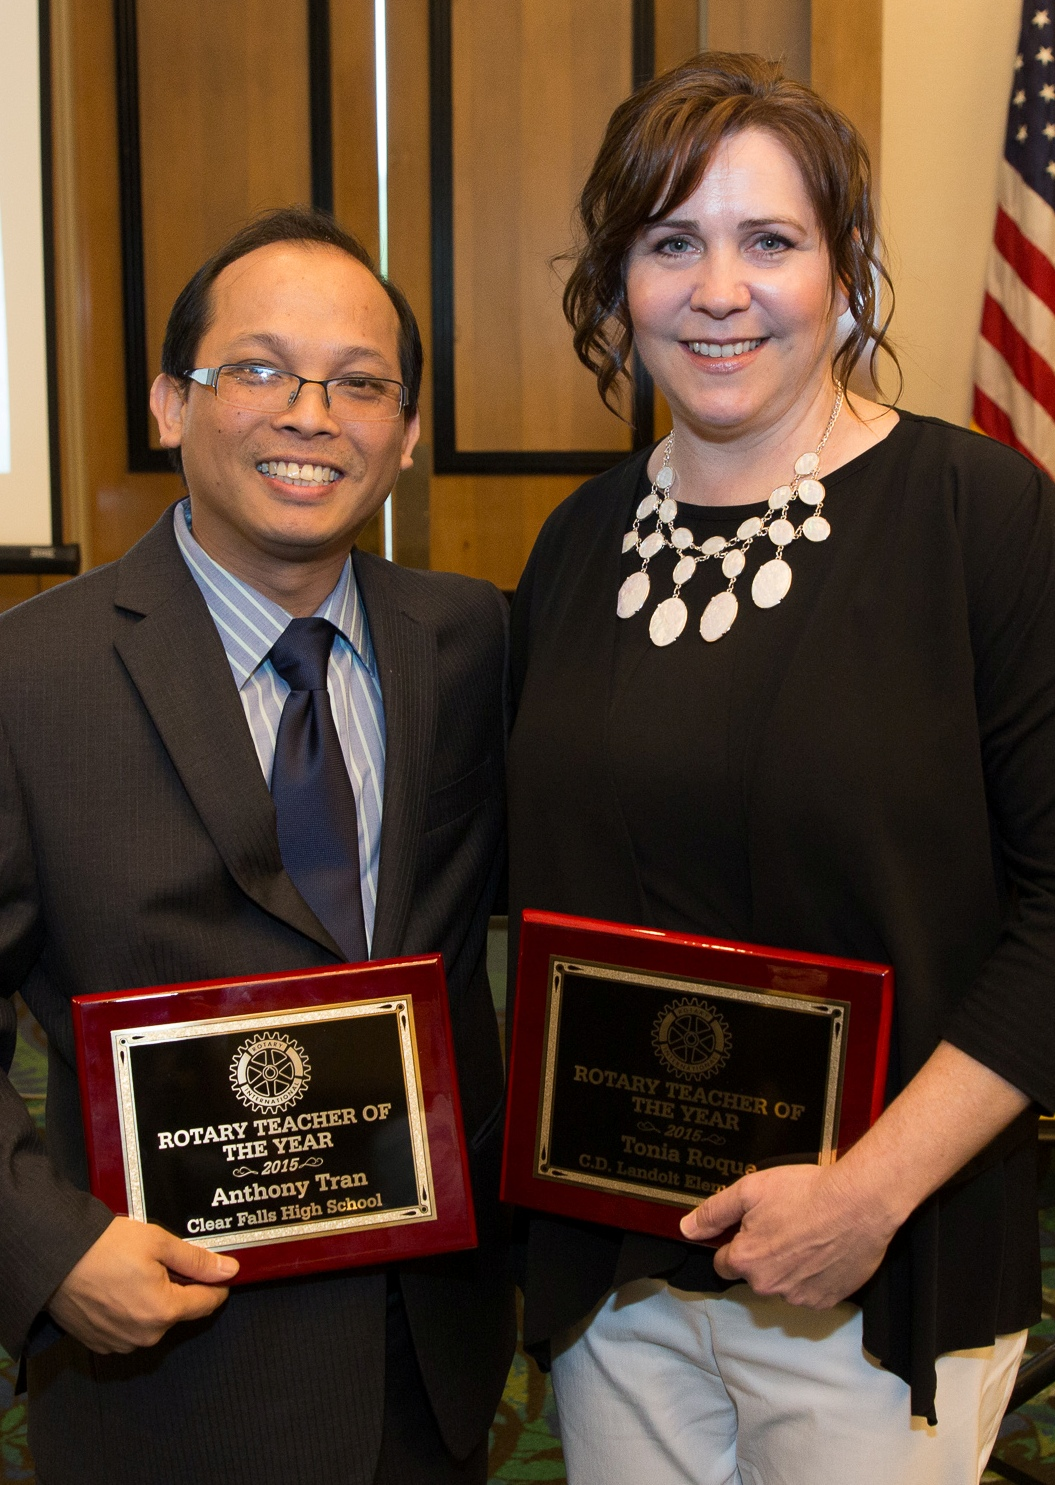 CCISD Teachers of the Year Anthony Tran of Clear Falls High and Tonia Roque of Landolt Elementary  show off the plaques they were presented at the luncheon at South Shore Harbour.